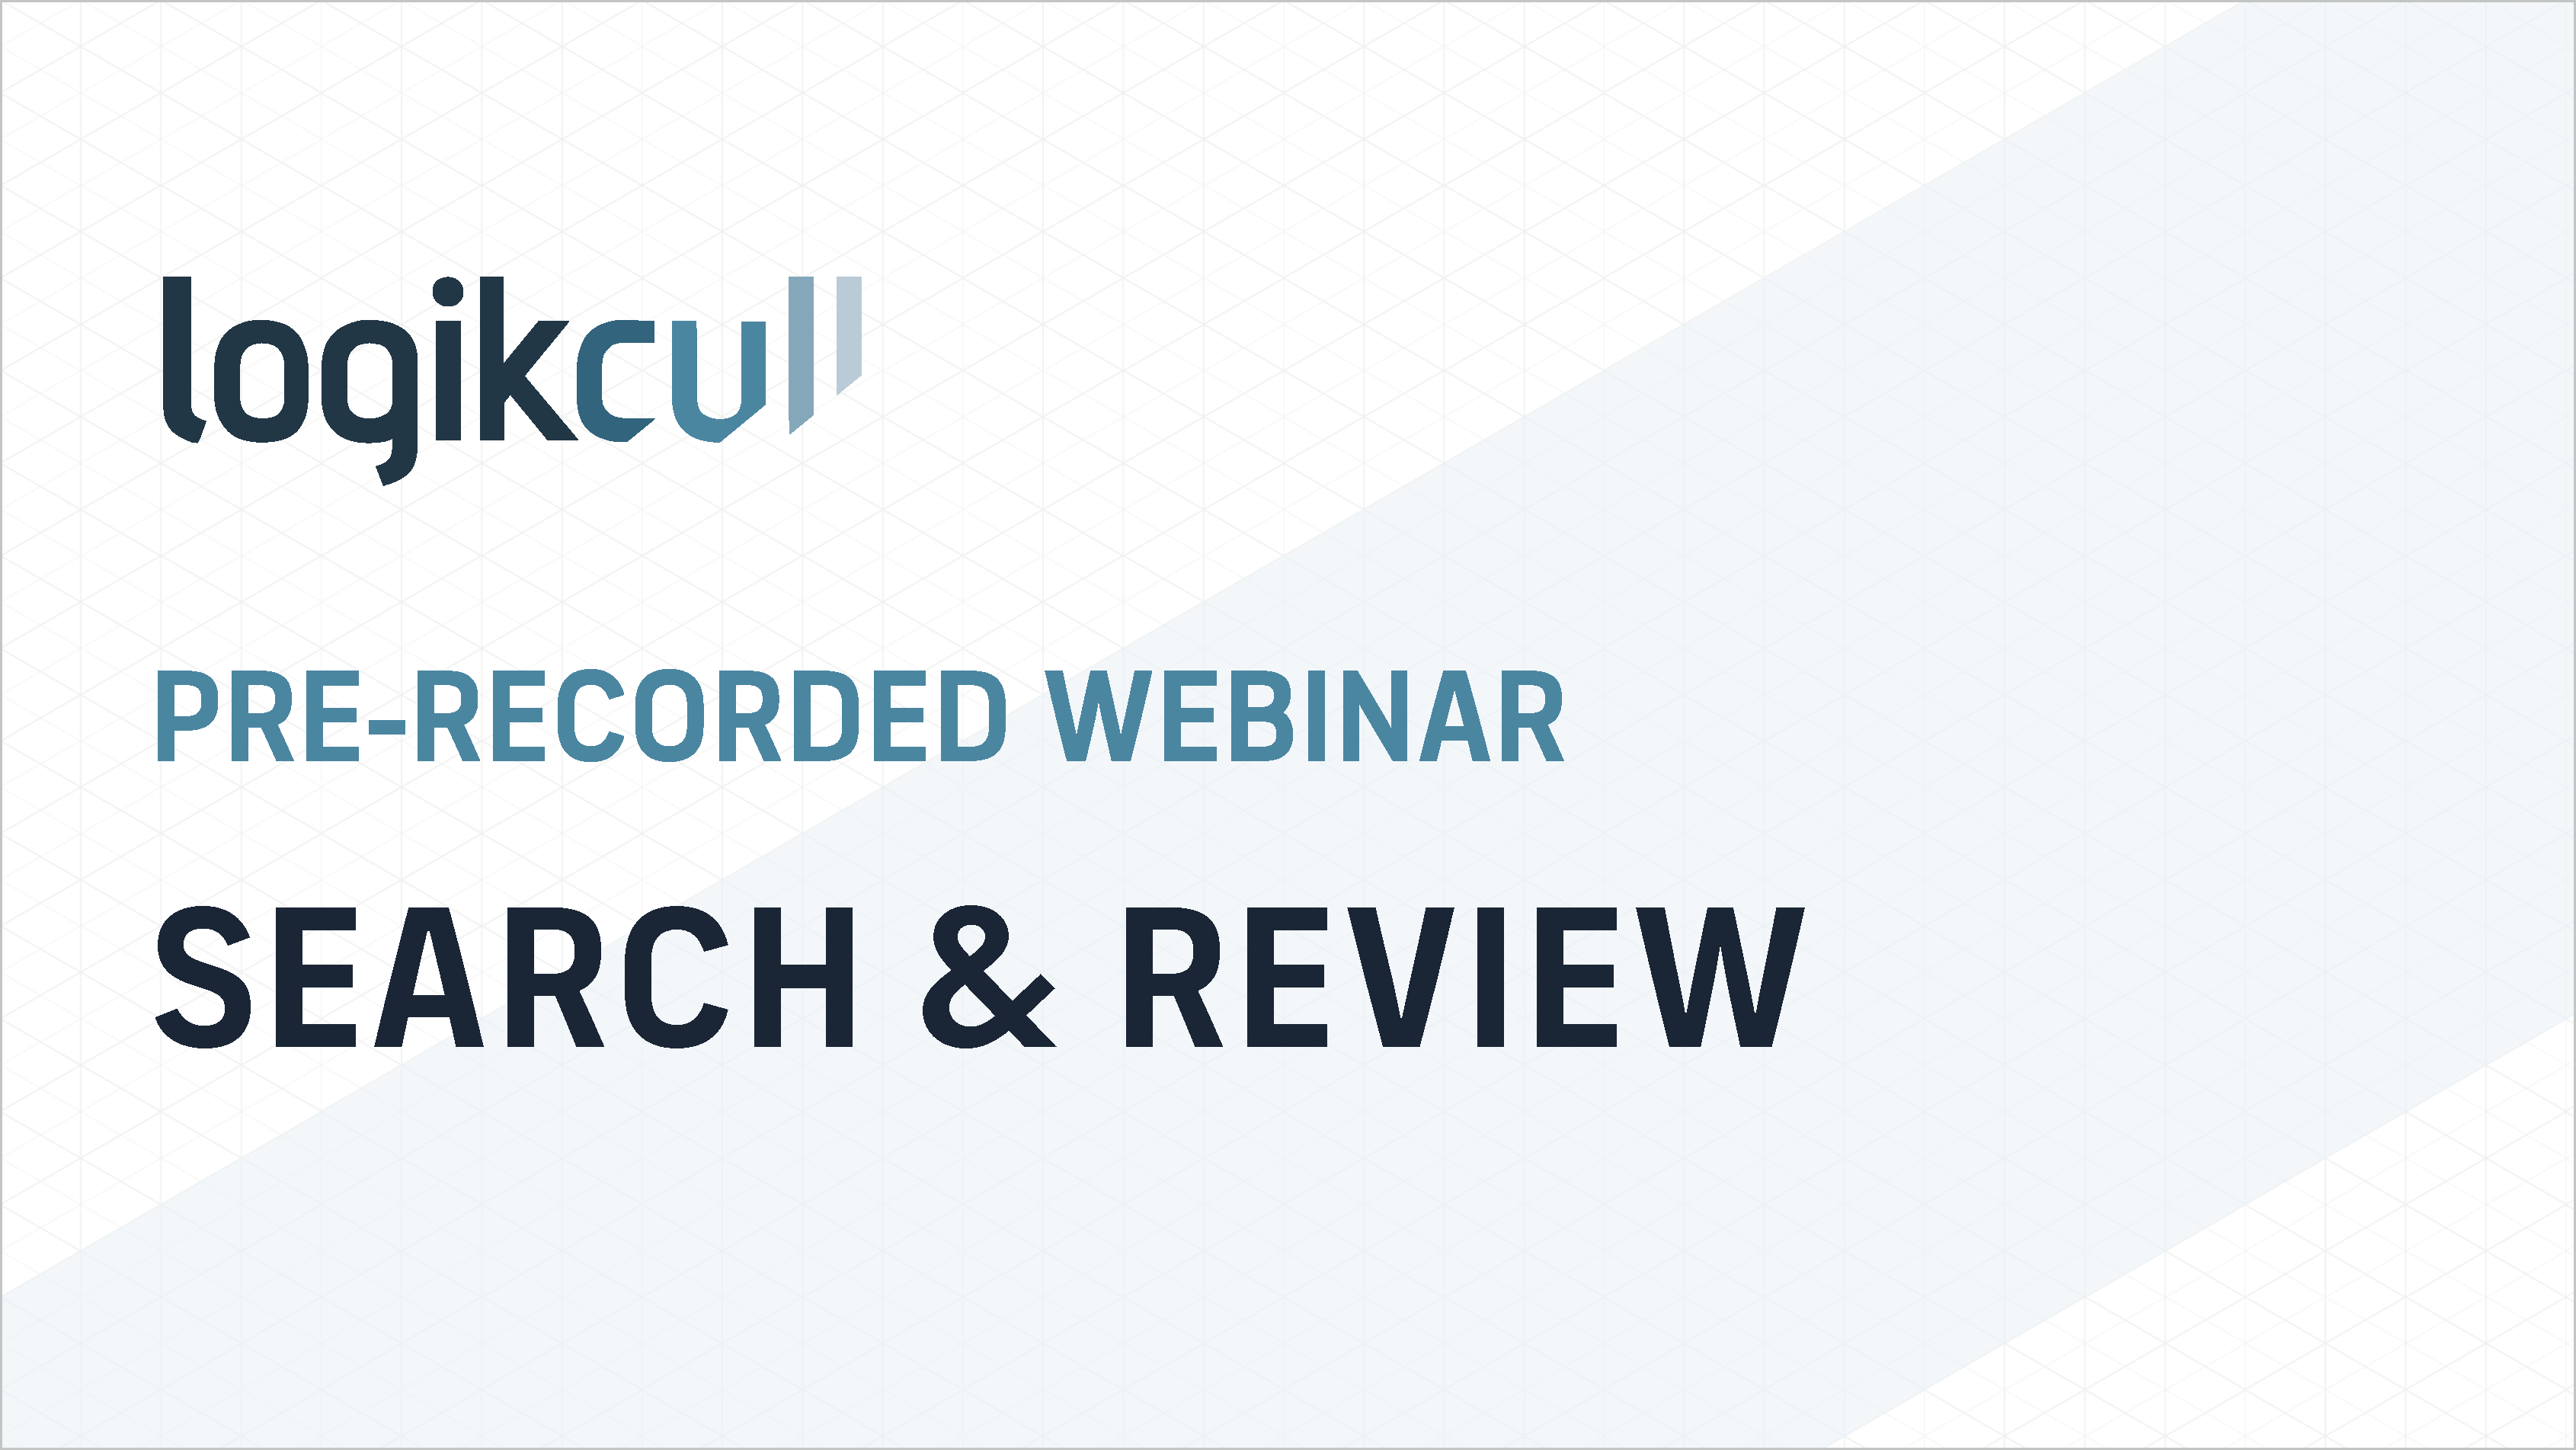 Search & Review Basics: Pre-Recorded Webinar